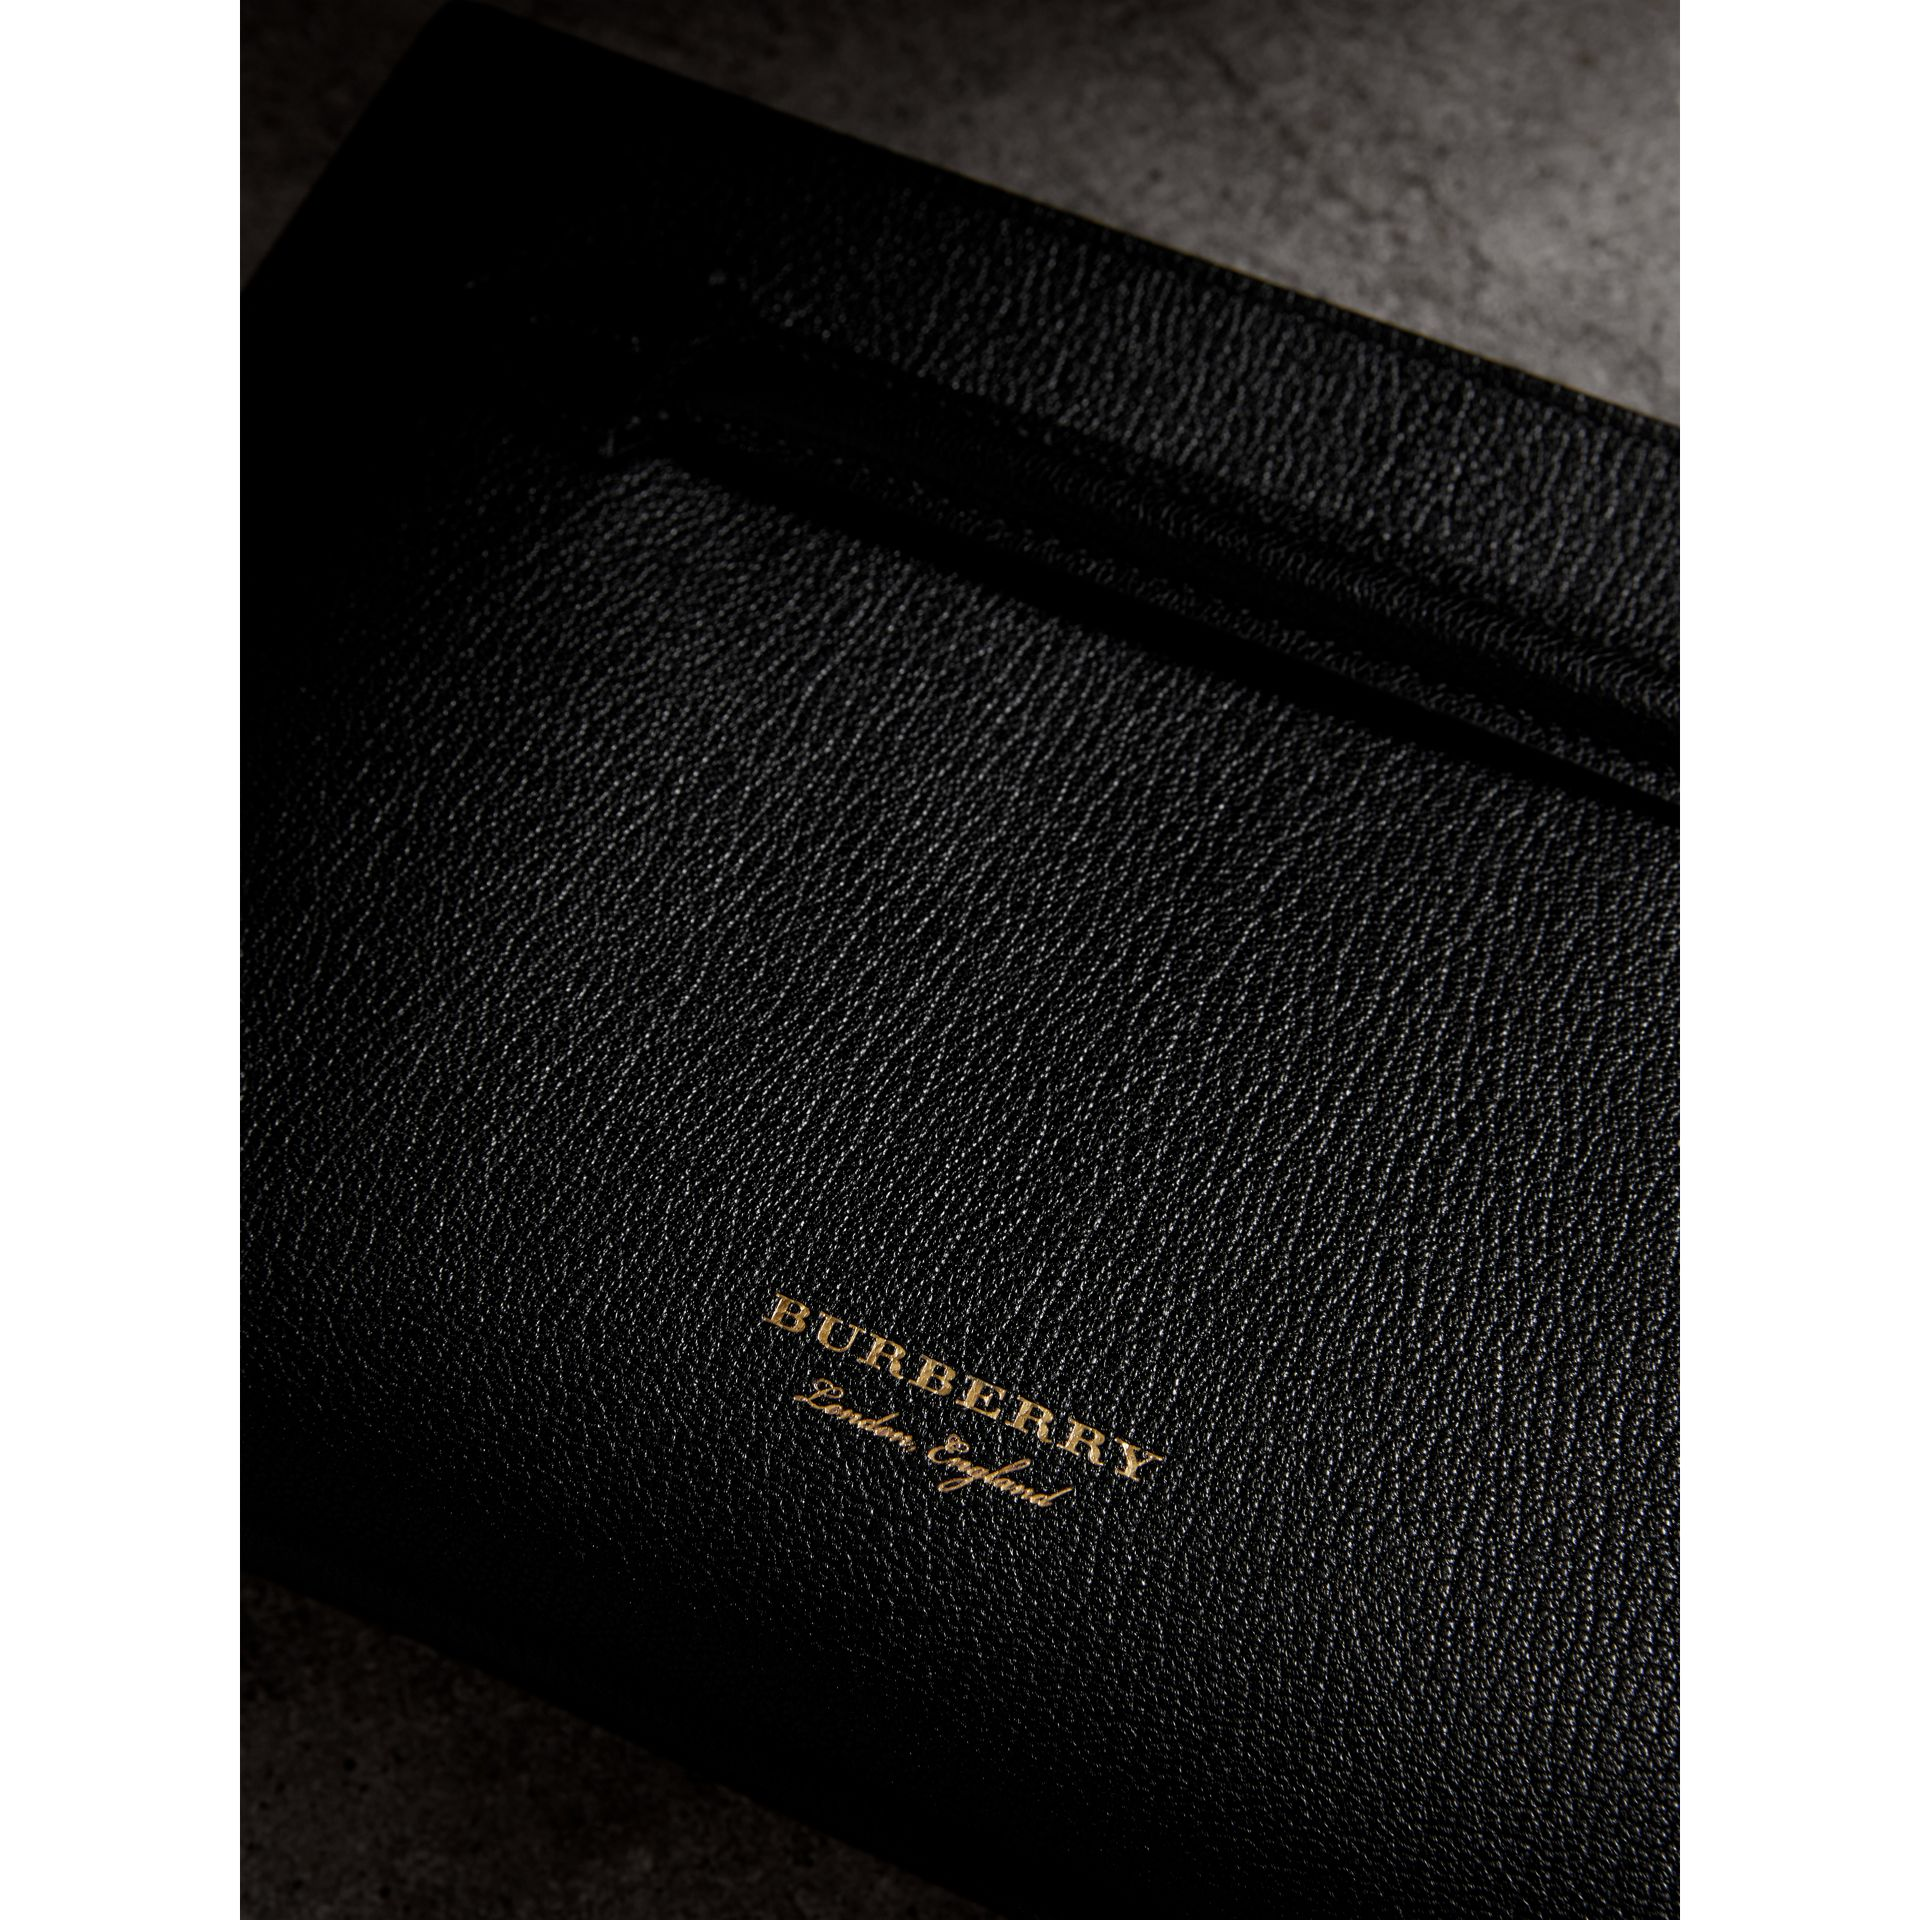 Grainy Leather Wristlet Clutch in Black - Women | Burberry Singapore - gallery image 1